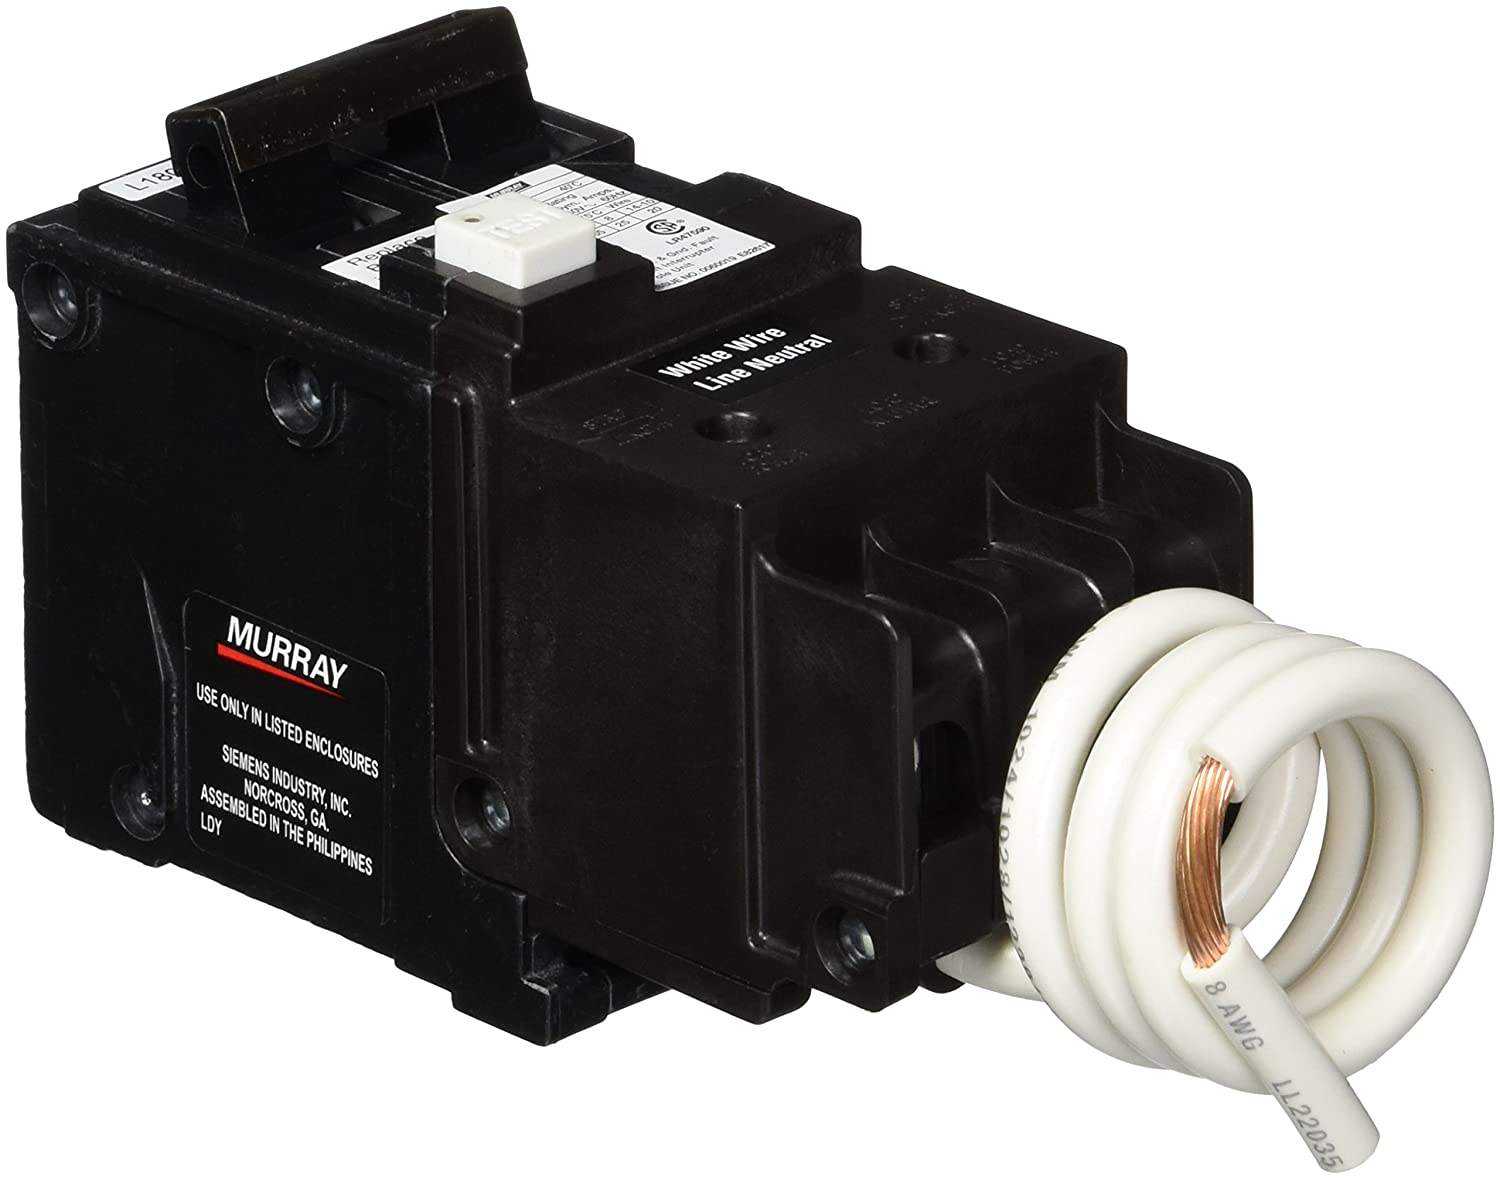 Siemens MP230GFAP 30 Amp, 2 Pole, 120/240V Ground Fault Circuit Interrupter with Self Test and Lockout Feature